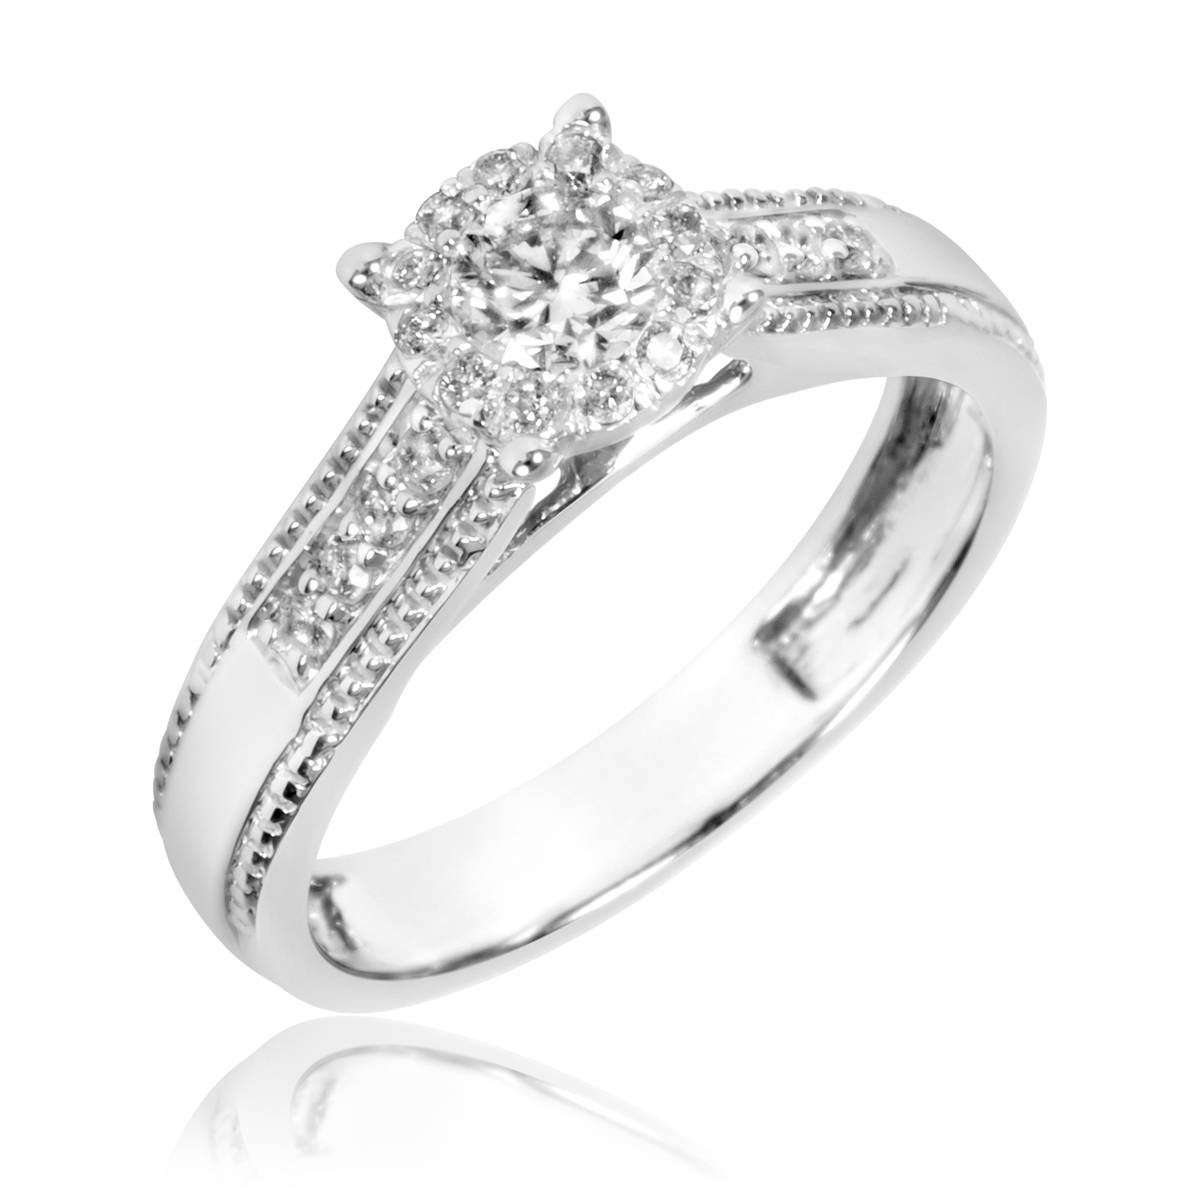 7/8 Carat T.w. Diamond Trio Matching Wedding Ring Set 10K White Gold Pertaining To White Gold Engagement And Wedding Rings (Gallery 12 of 15)